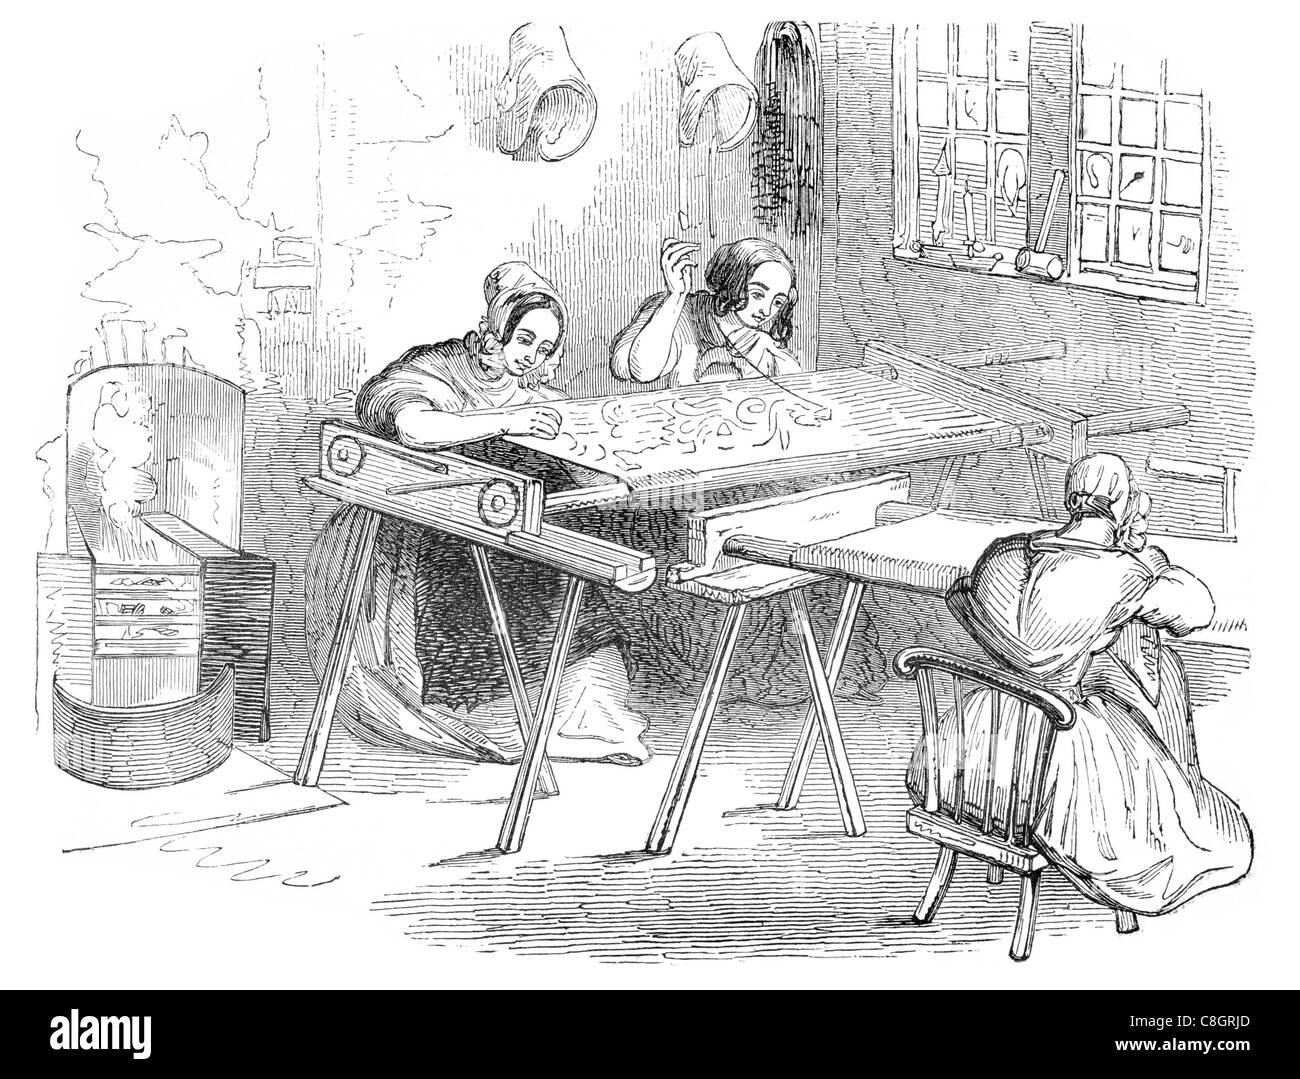 Nottingham lace running or embroidering weaving textiles textile cottage industry craft workshop weaver - Stock Image